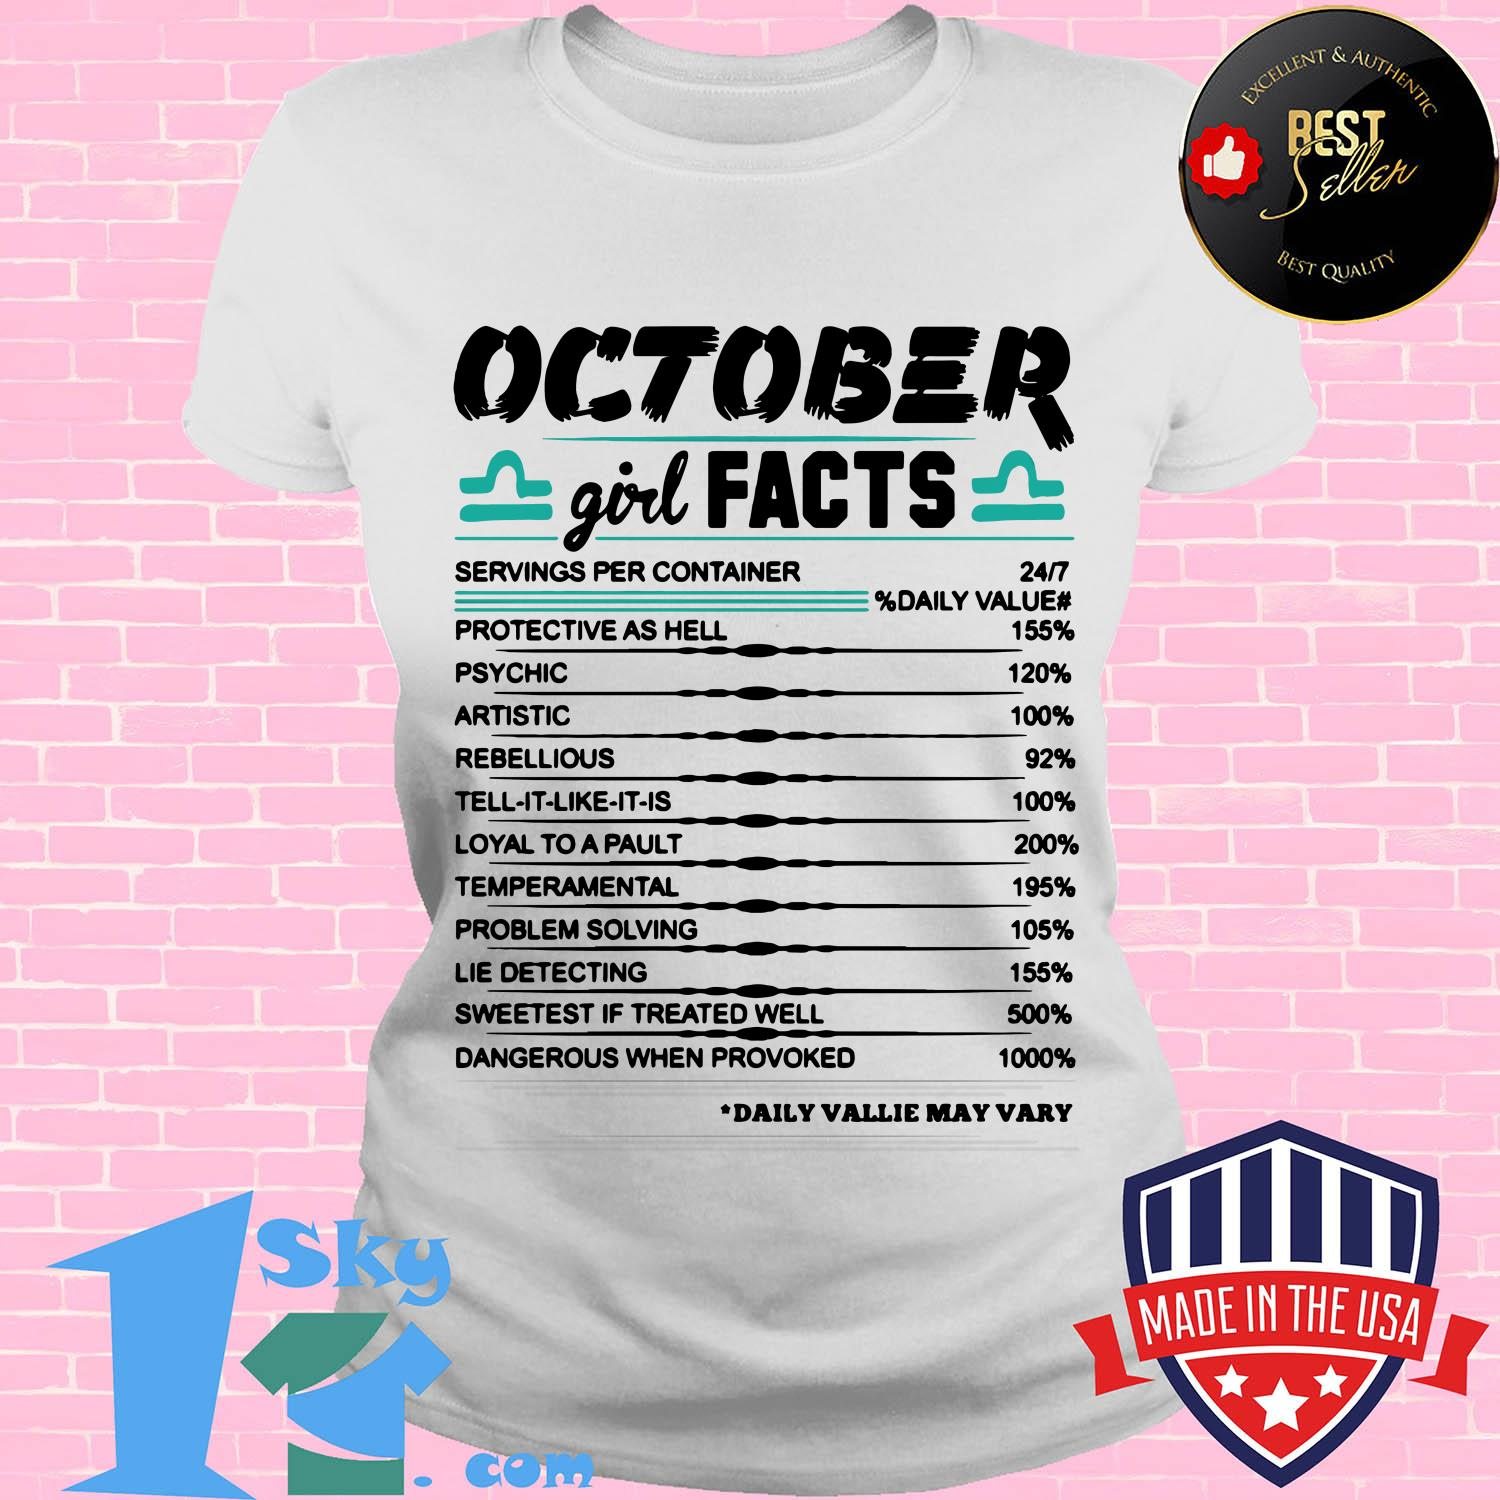 libra october girl facts serving per container protective as hell ladies tee - Libra October girl facts serving per container protective as hell shirt